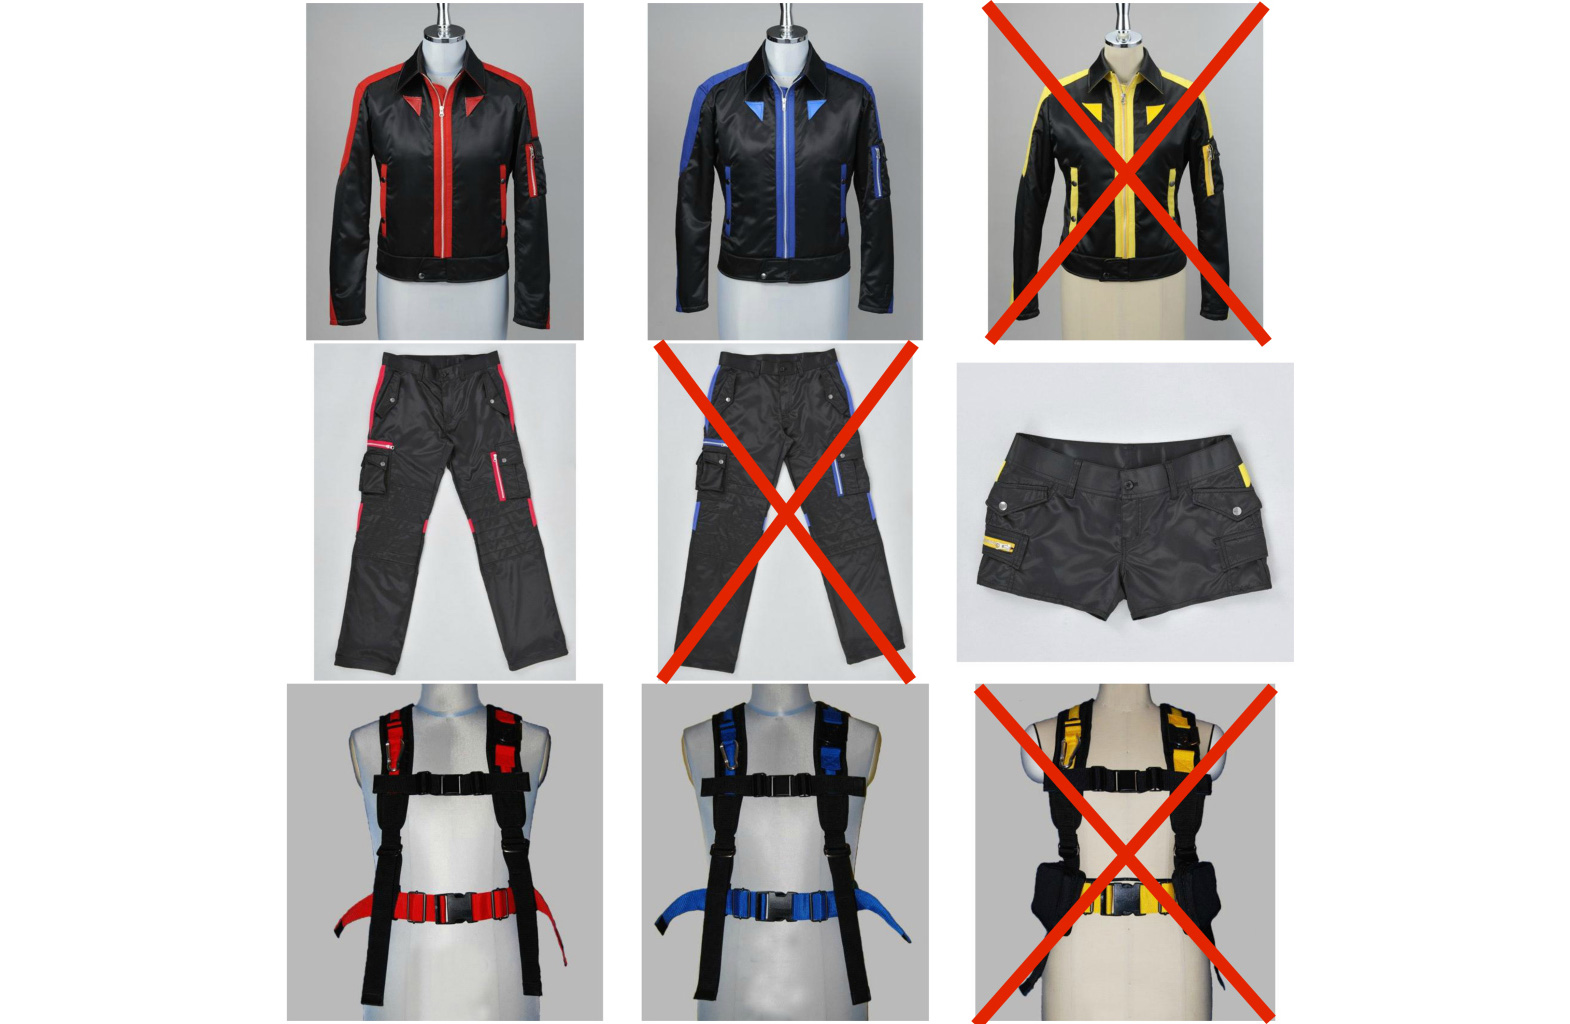 Our throwback Thursdays feature older items that are still in stock at Bandai. This means they can be ordered through a middleman service for retail price!  sc 1 st  Toku Fashion Critics & TBT: Busters Ready Go! u2013 Toku Fashion Critics